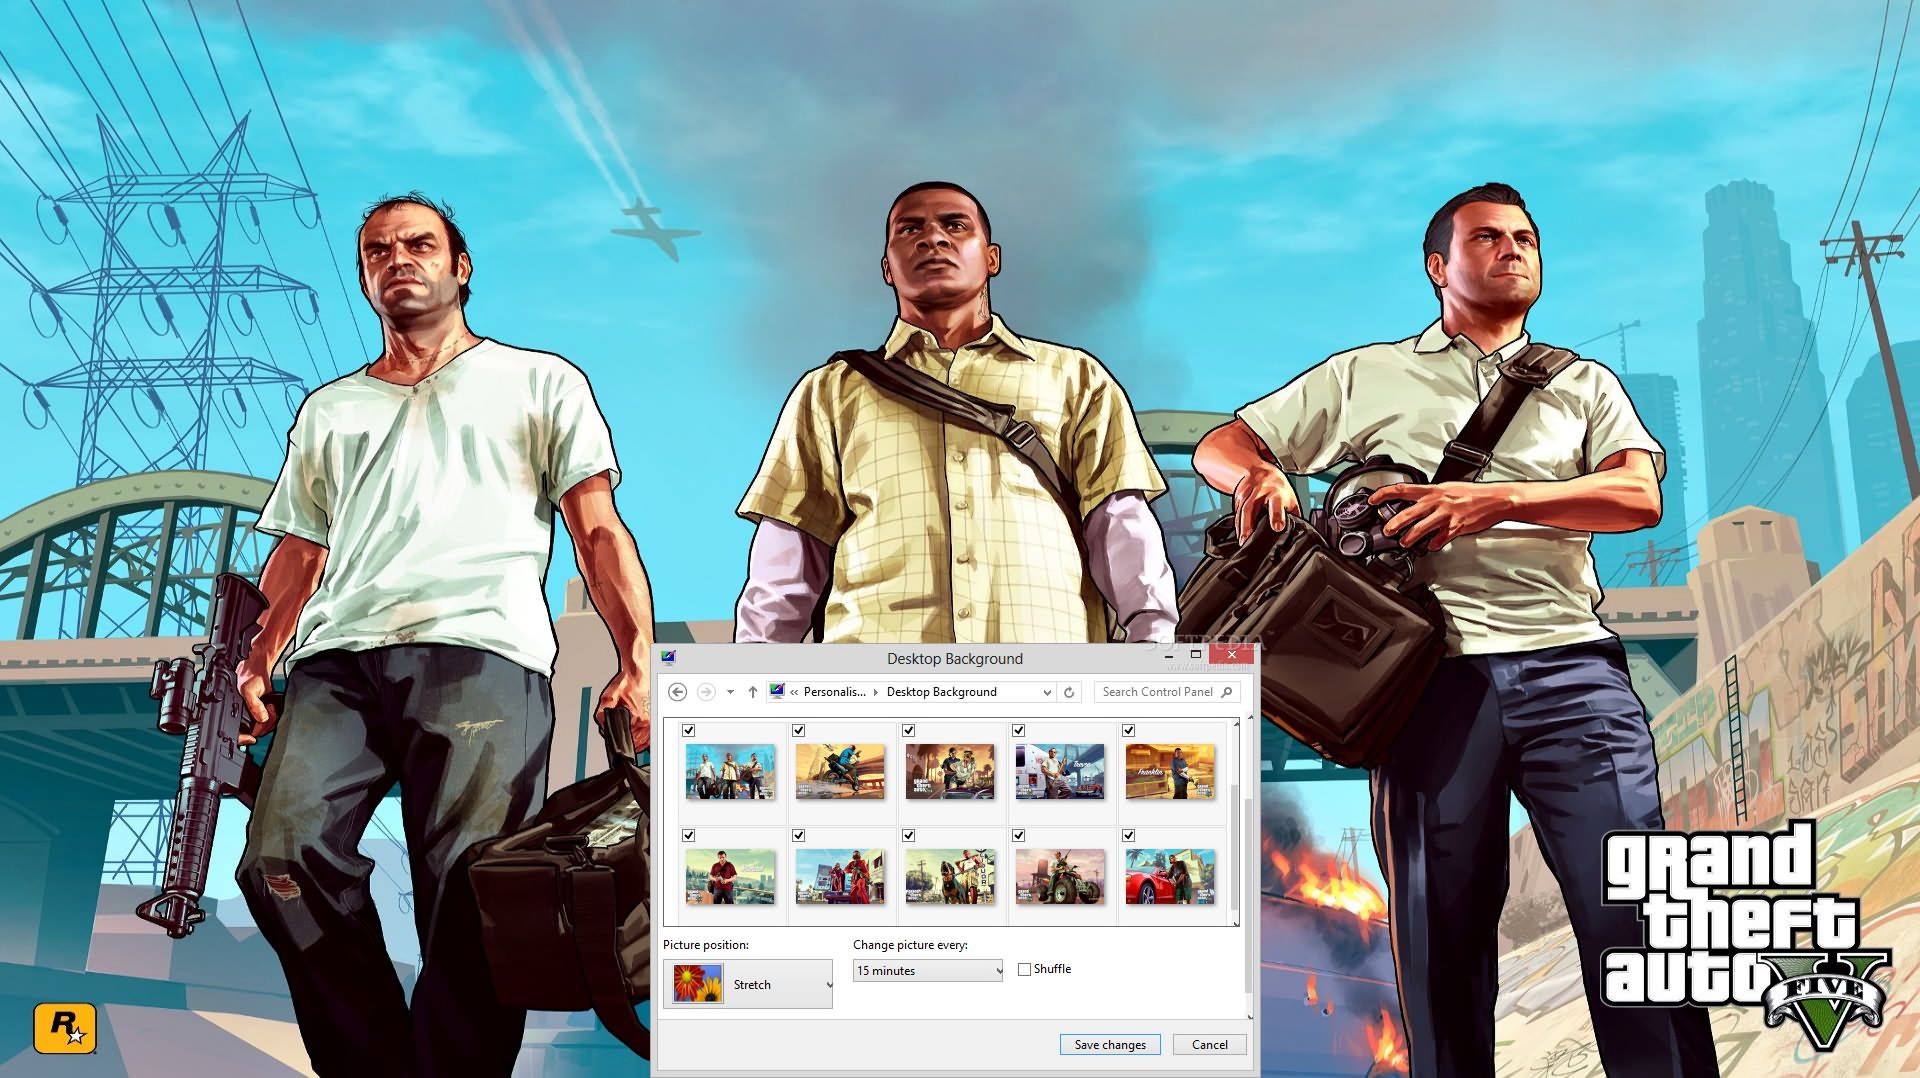 Grand Theft Auto V Windows 7 Theme